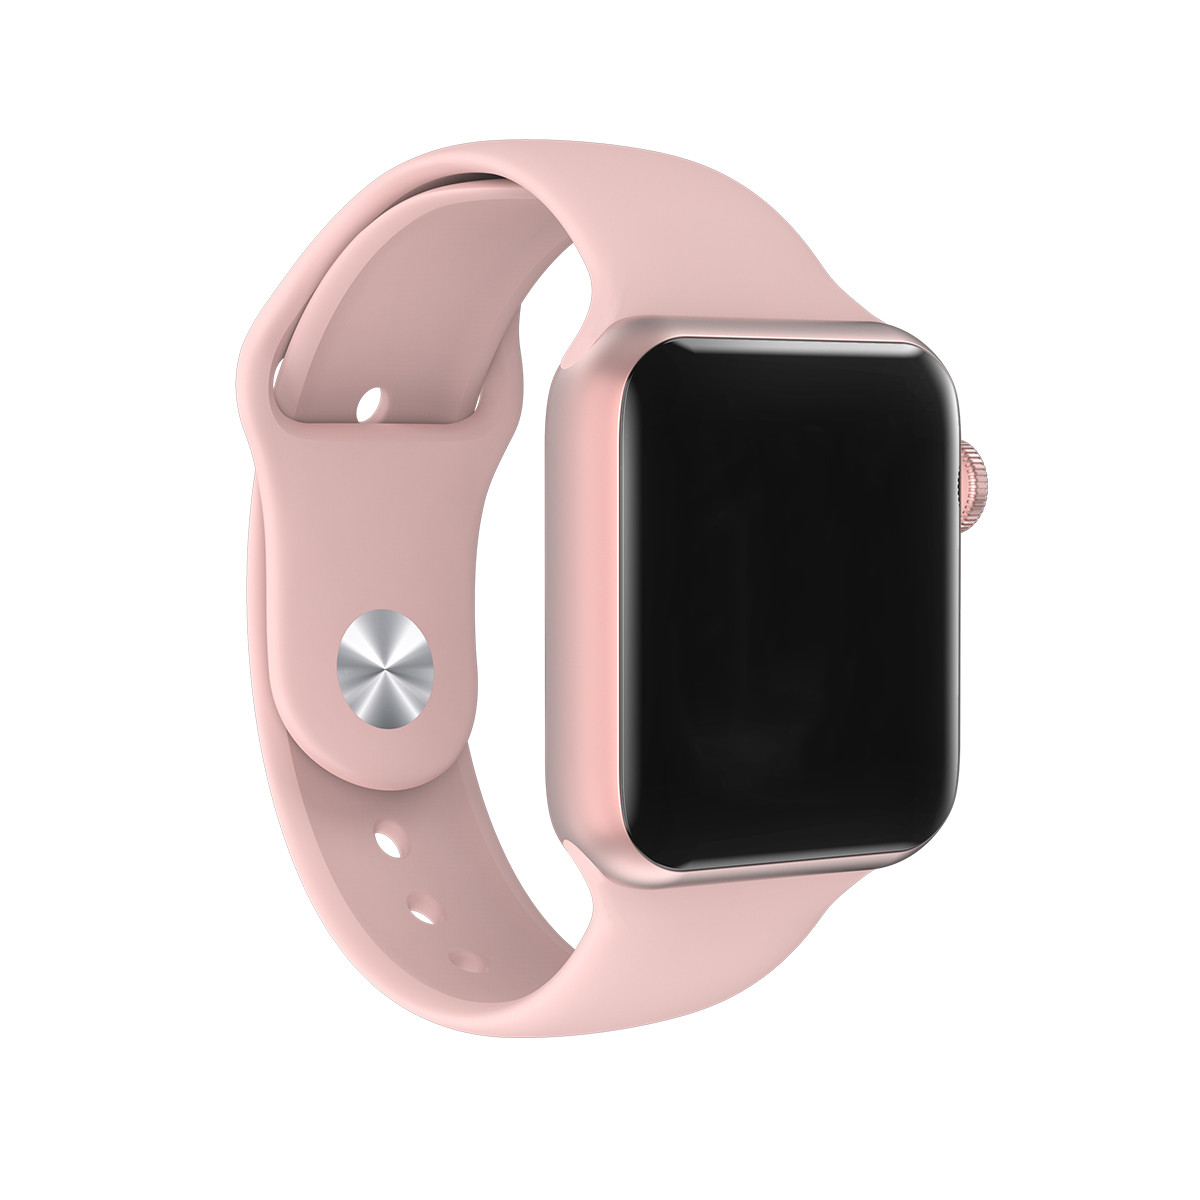 Smart Watch V6 Men Heart Rate Fitnees Tracker Women <font><b>Smartwatch</b></font> For Apple IOS Android PK Iwo 8 9 10 11 12 <font><b>F10</b></font> W34 Plus image